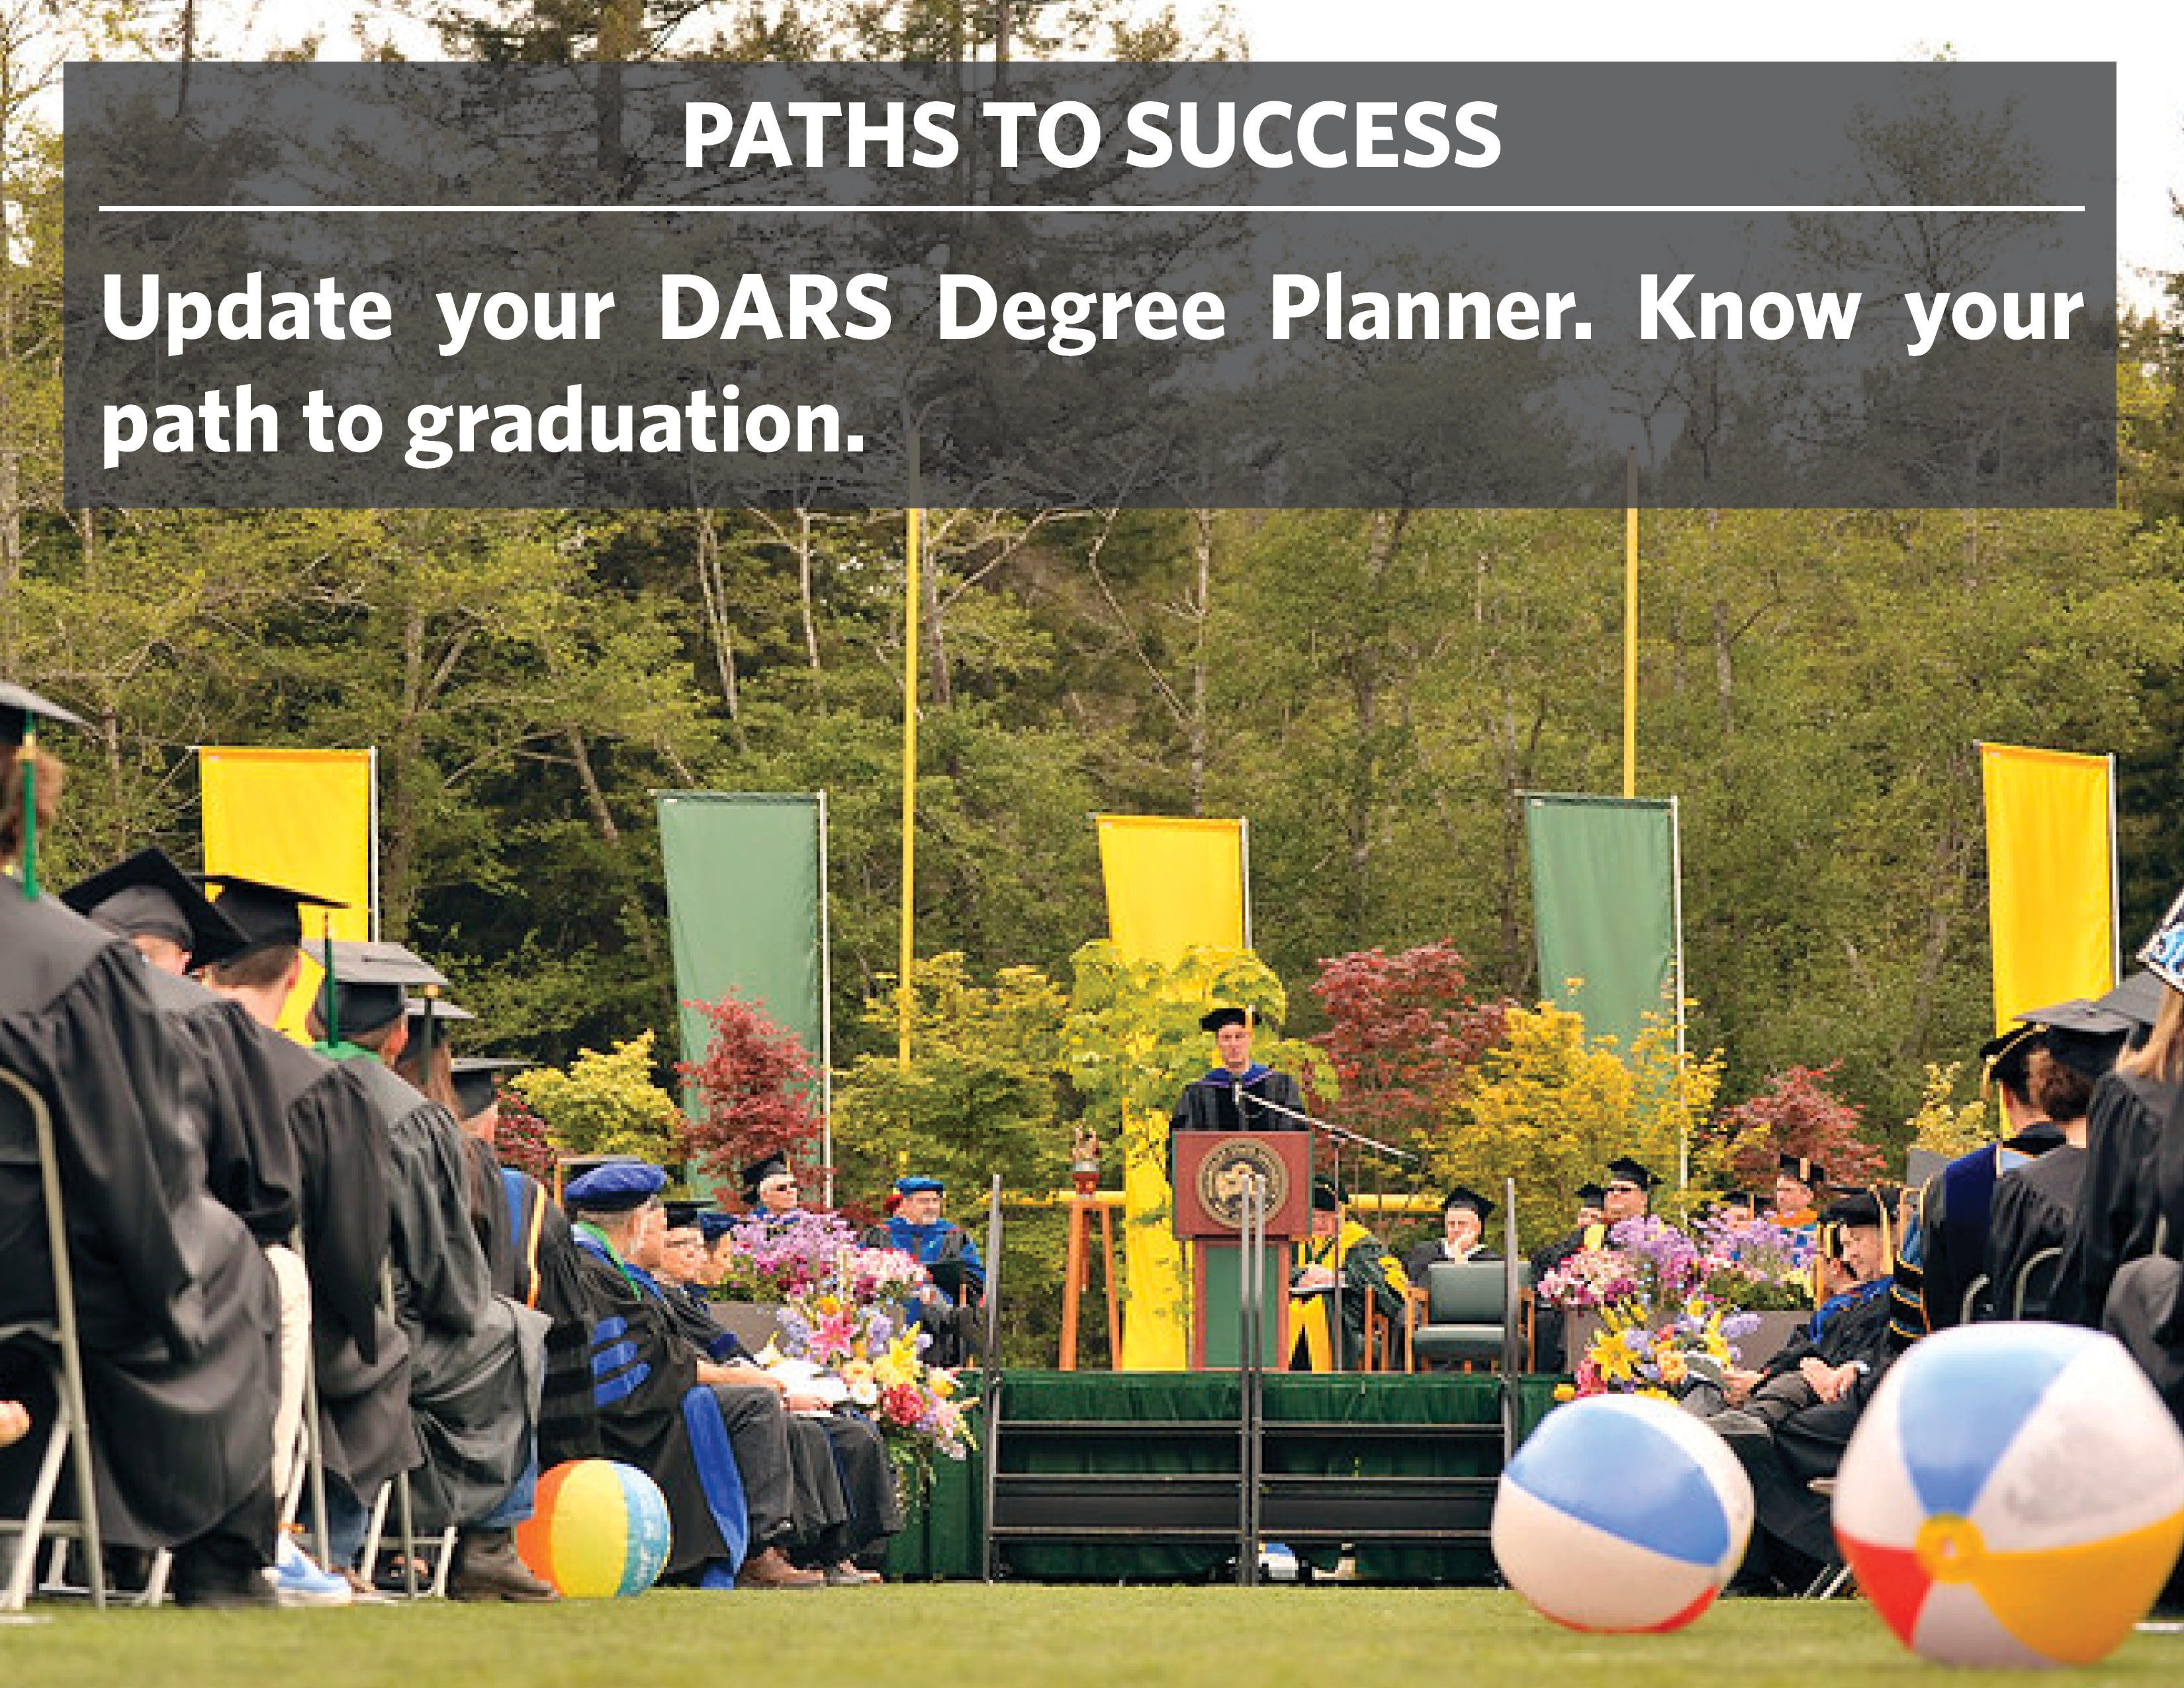 Paths to success: Update your DARS Degree Planner. Know your path to graduation.